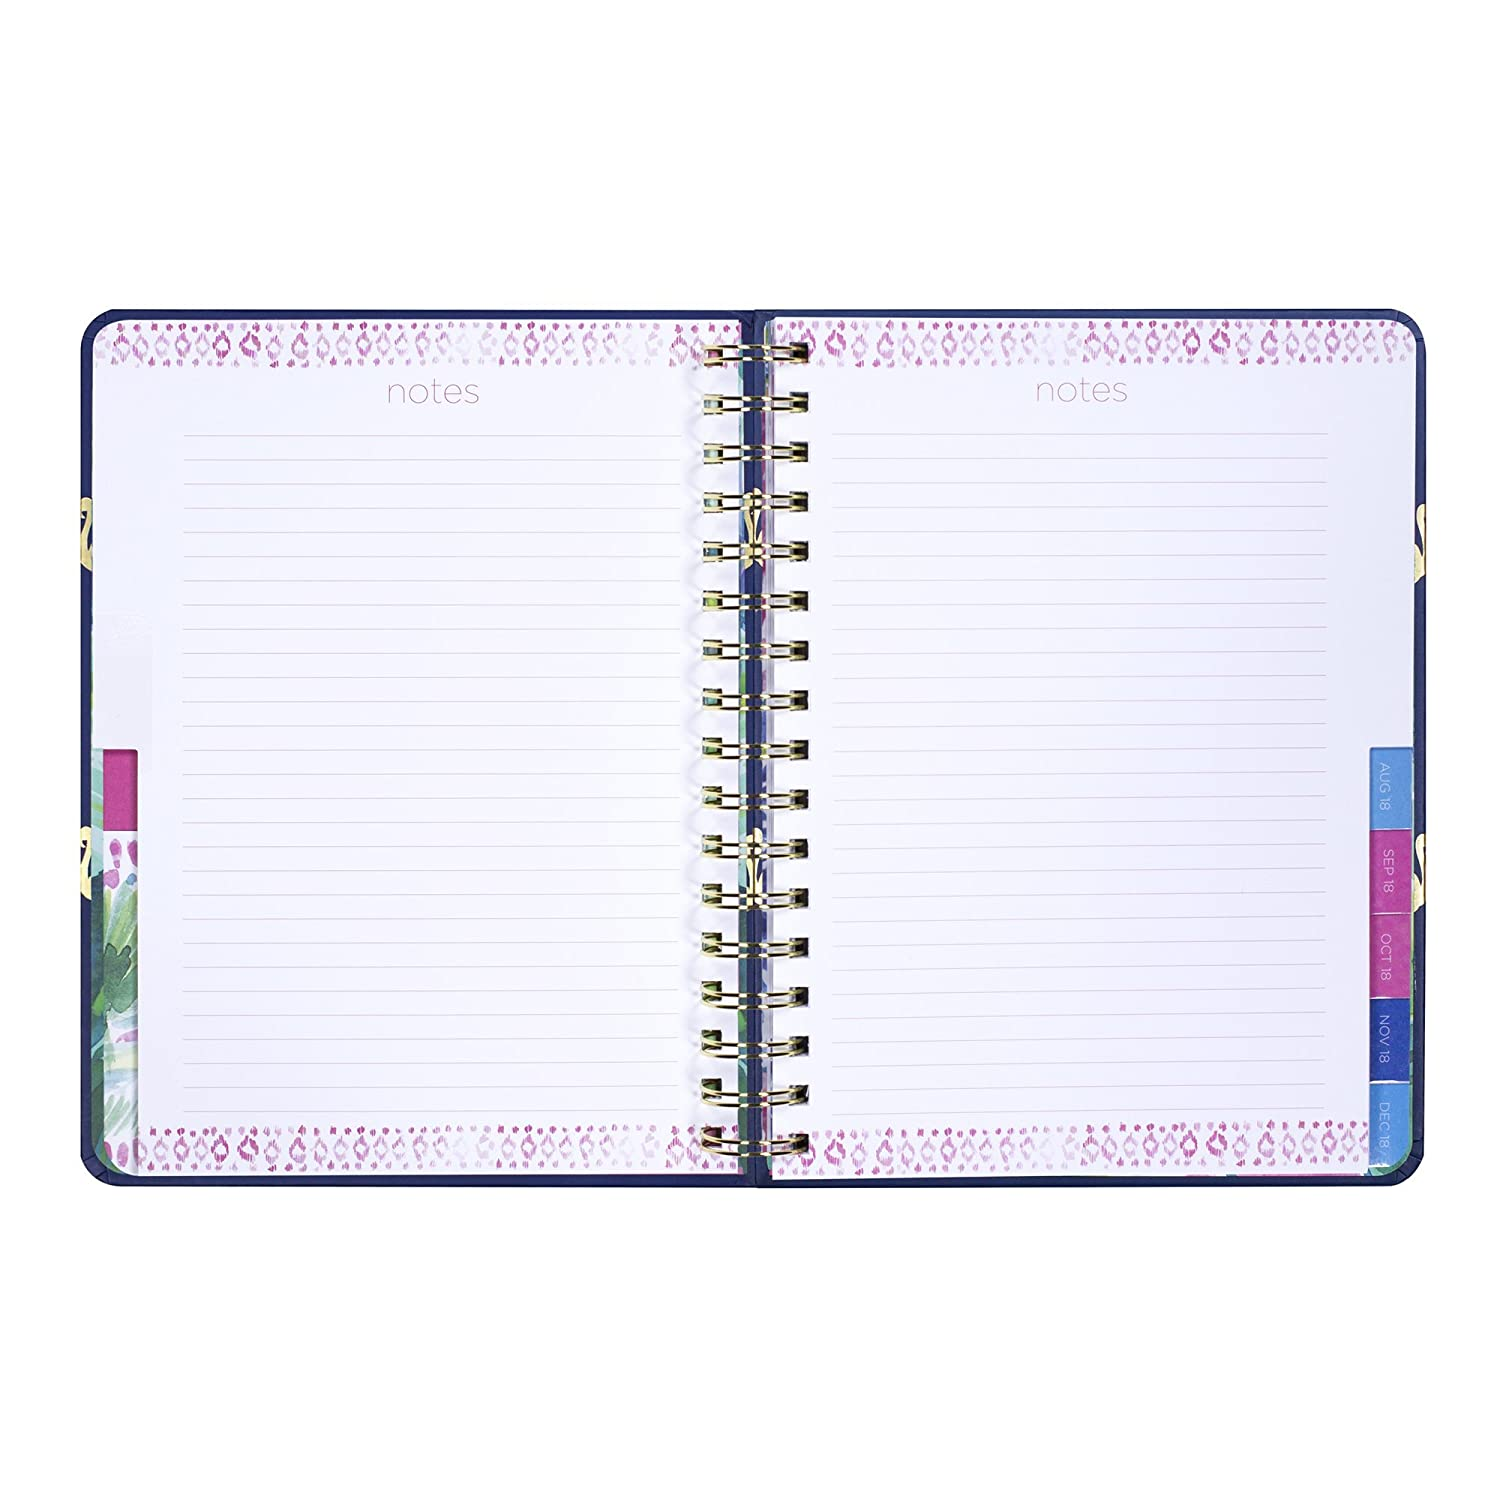 a2afd87726a111 Amazon.com : Lilly Pulitzer 17 Month Large Hardcover Agenda, Personal  Planner, 2018-2019 (Navy Flamingo) : Office Products